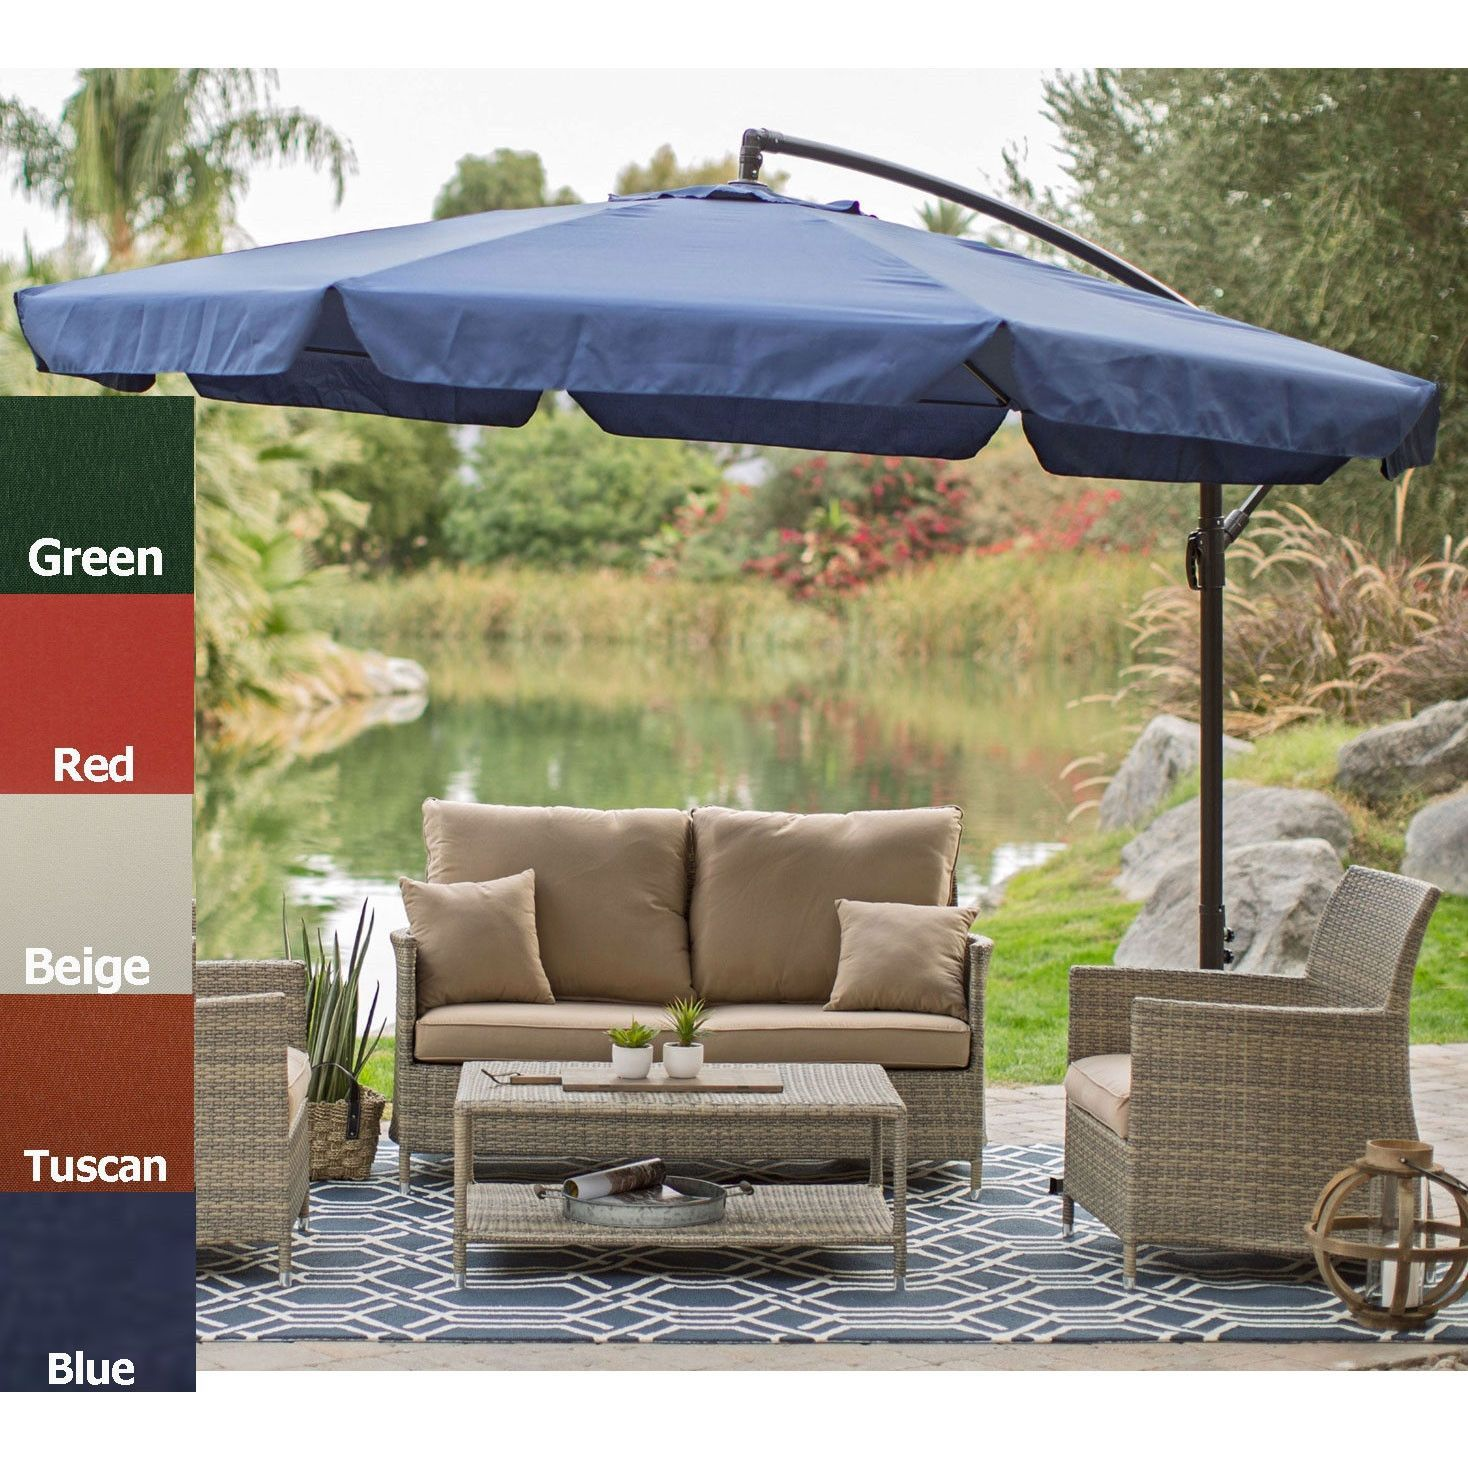 Tuscan Orange Red 11 Ft Offset Patio Umbrella Gazebo With Canopy Base And Detachable Mosquito Netting